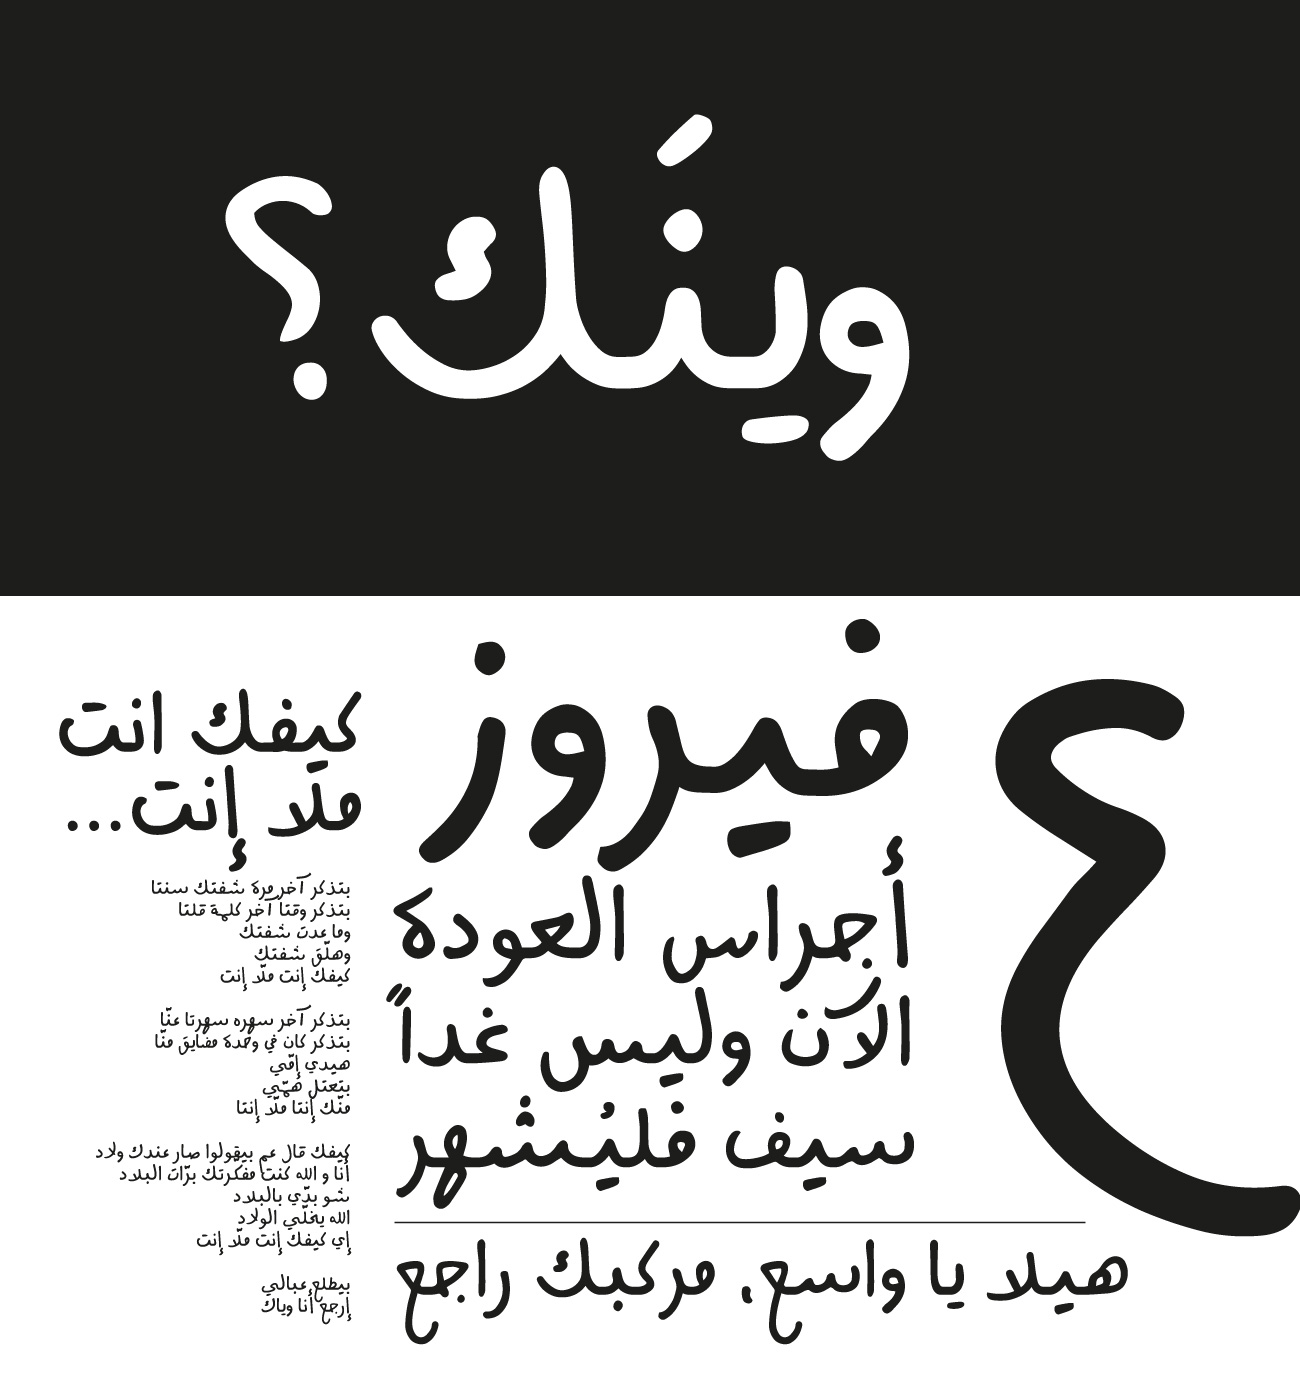 calligraphy arabic fonts free download - Leon seattlebaby co